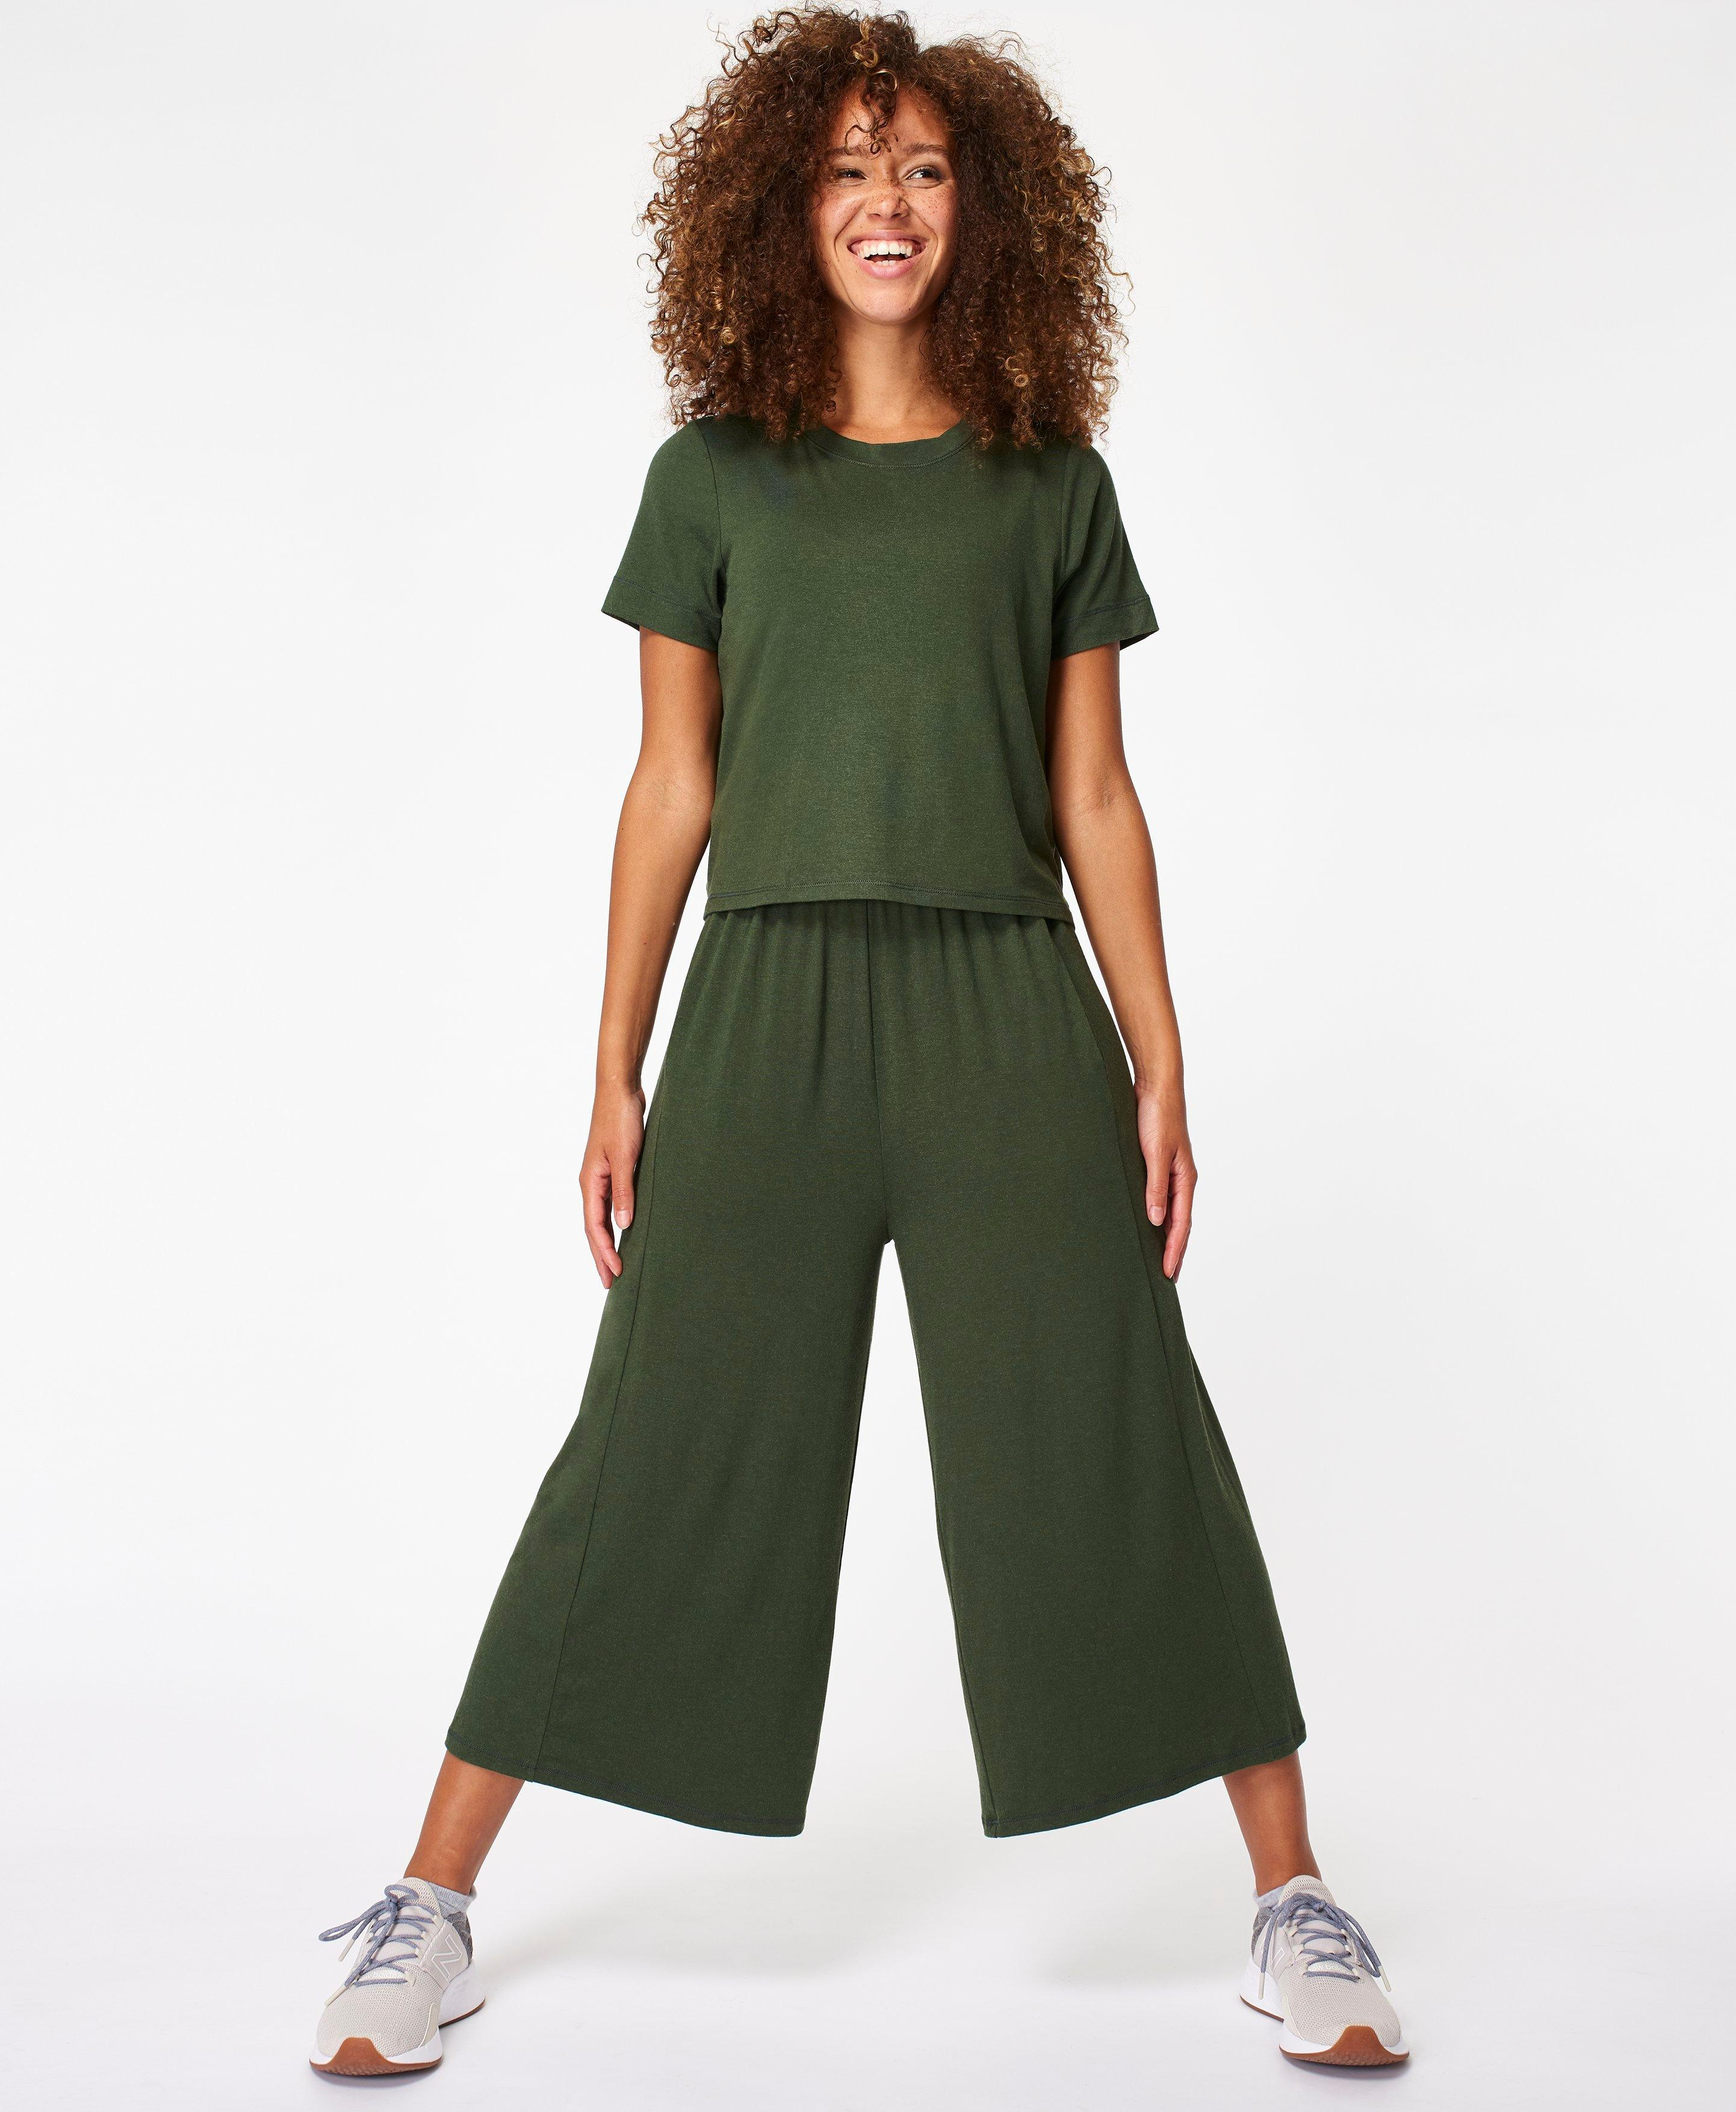 In our signature super soft jersey with the perfect drape, this easy wear jumpsuit has a short sleeved relaxed fit over layer tee with open back and culotte length wide legs. Perfect for picnics or chilling at home.